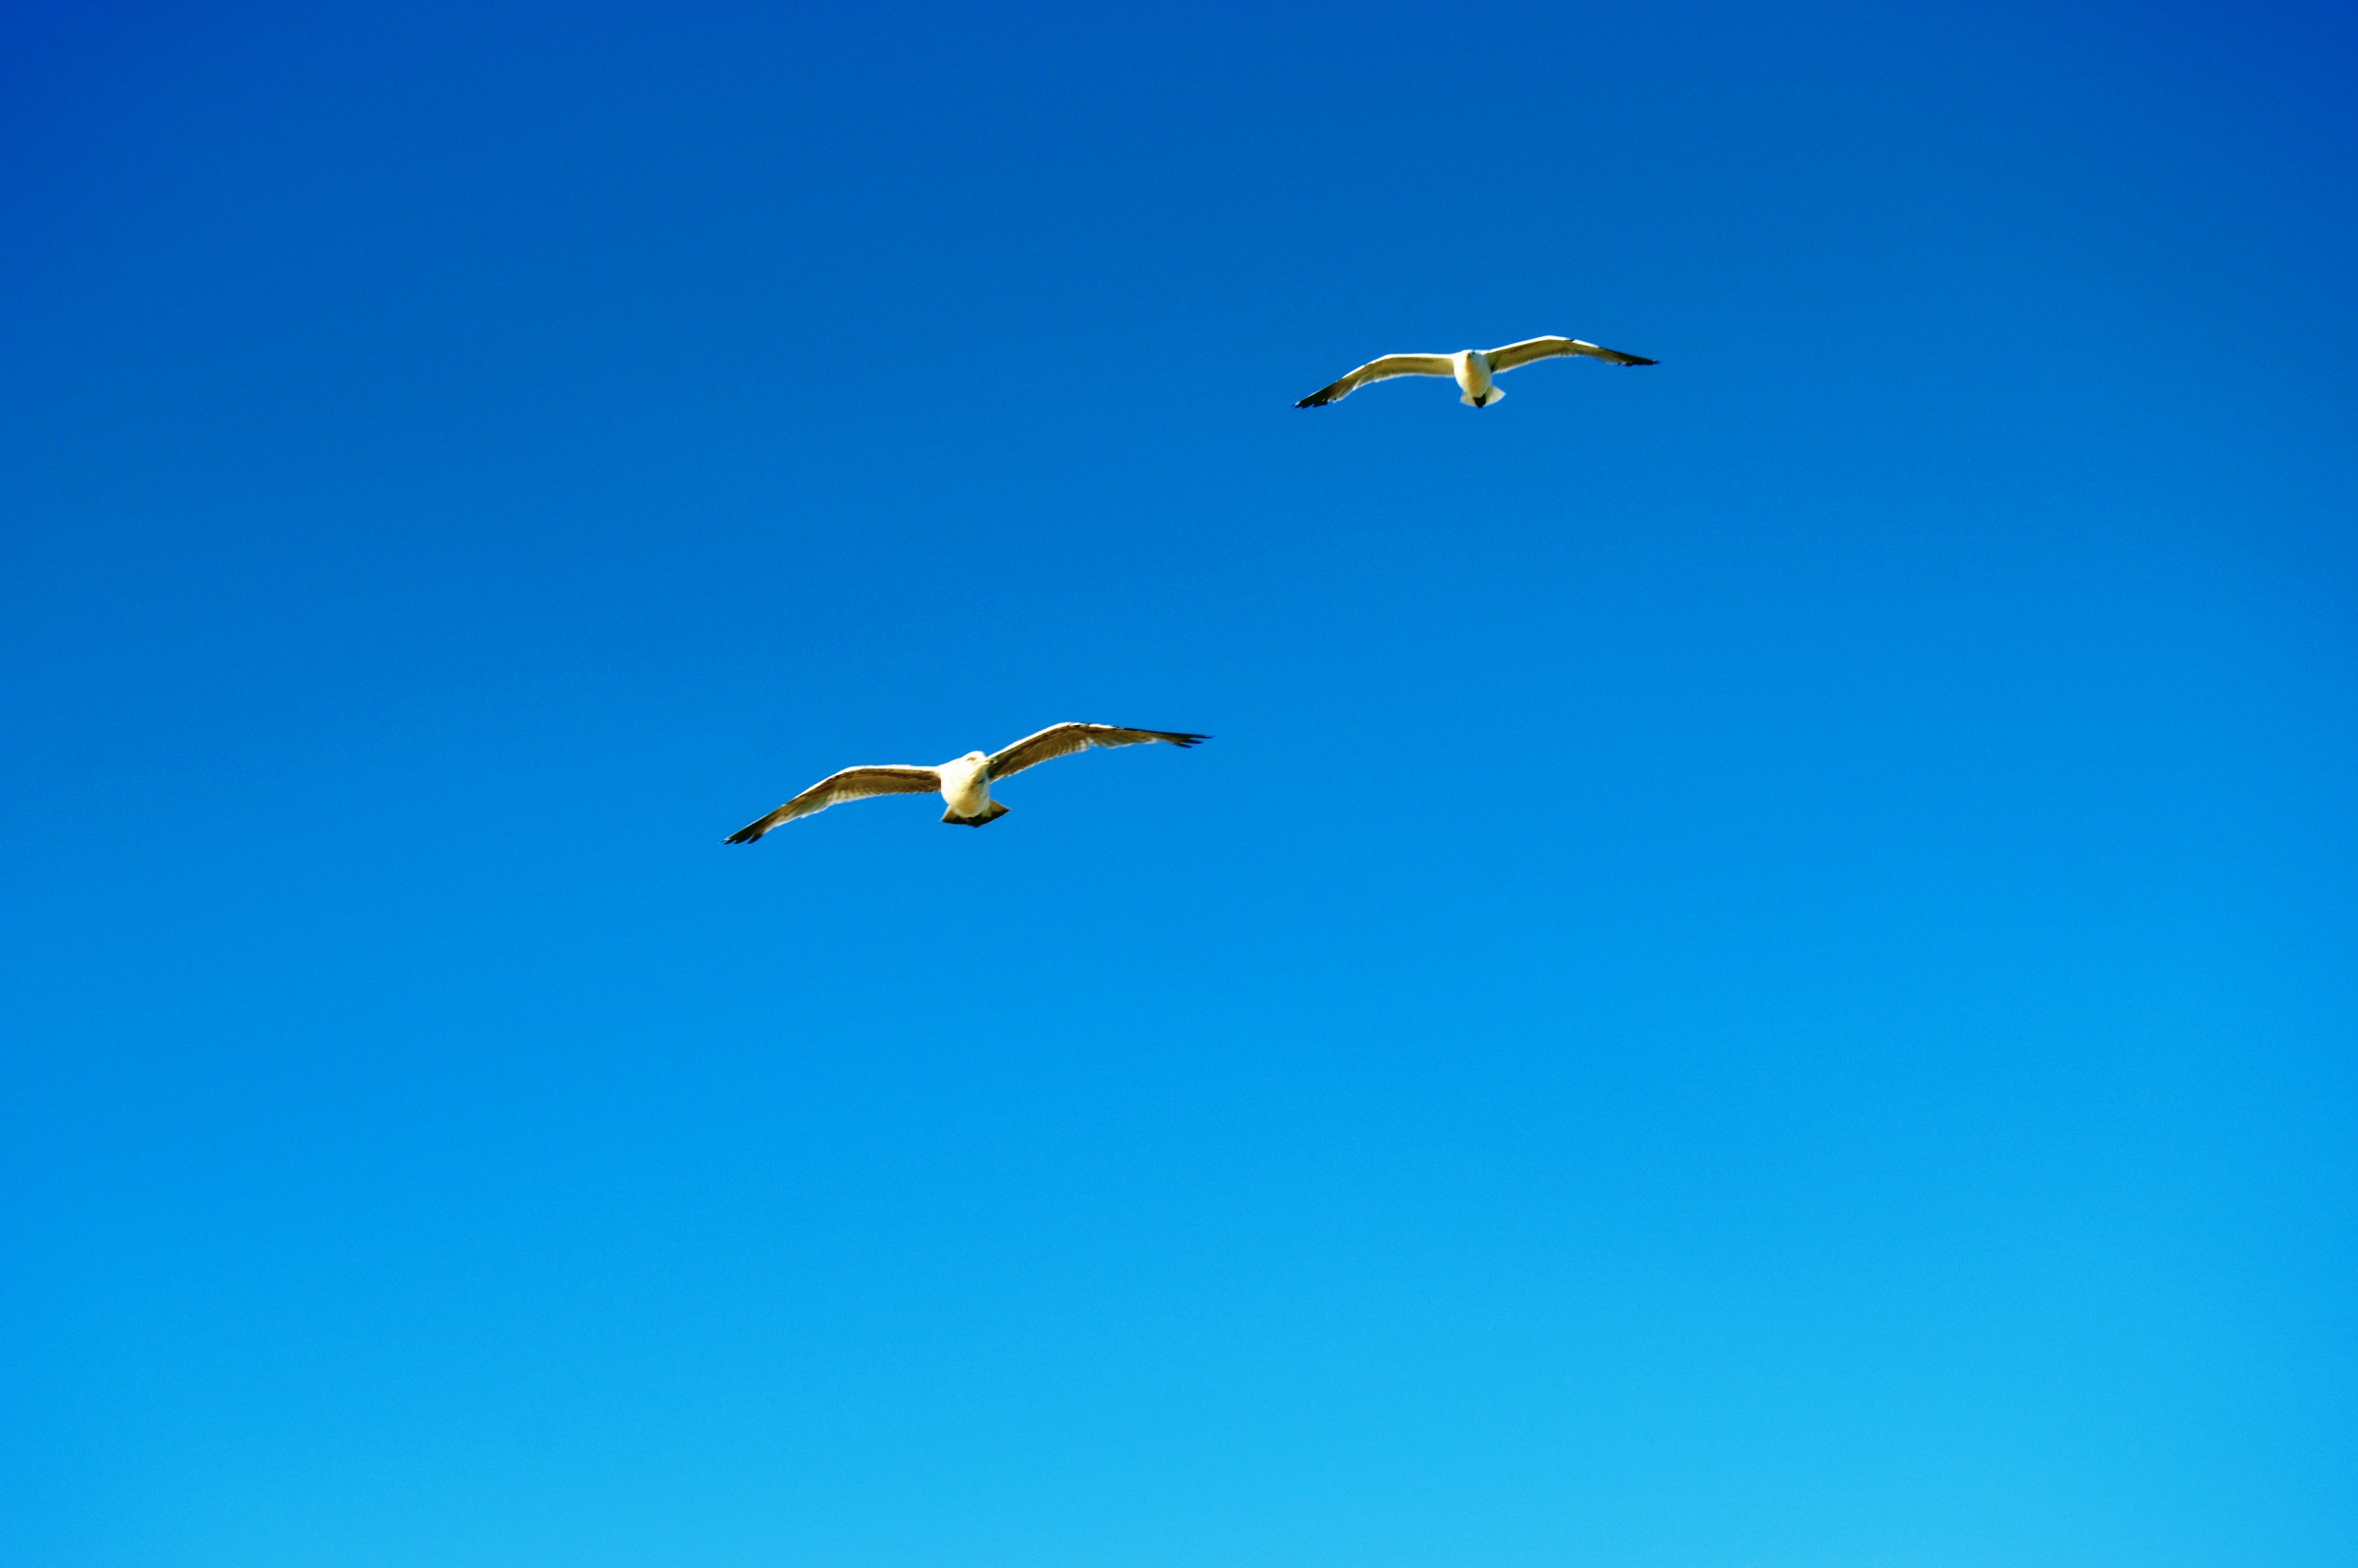 Two seagulls fly side by side photo